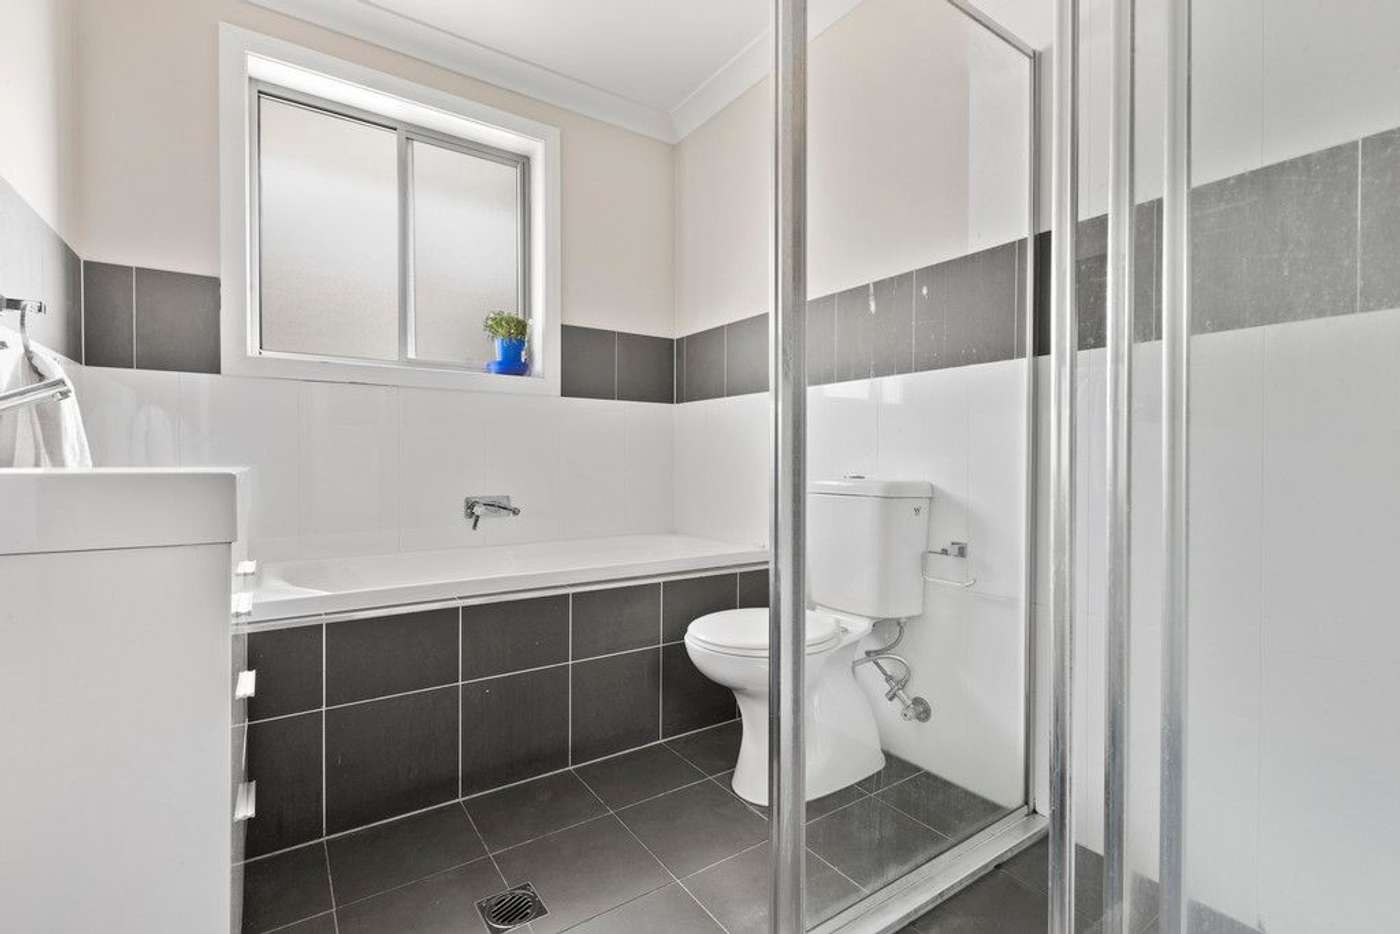 Sixth view of Homely townhouse listing, 41/570 Sunnyholt Road, Stanhope Gardens NSW 2768